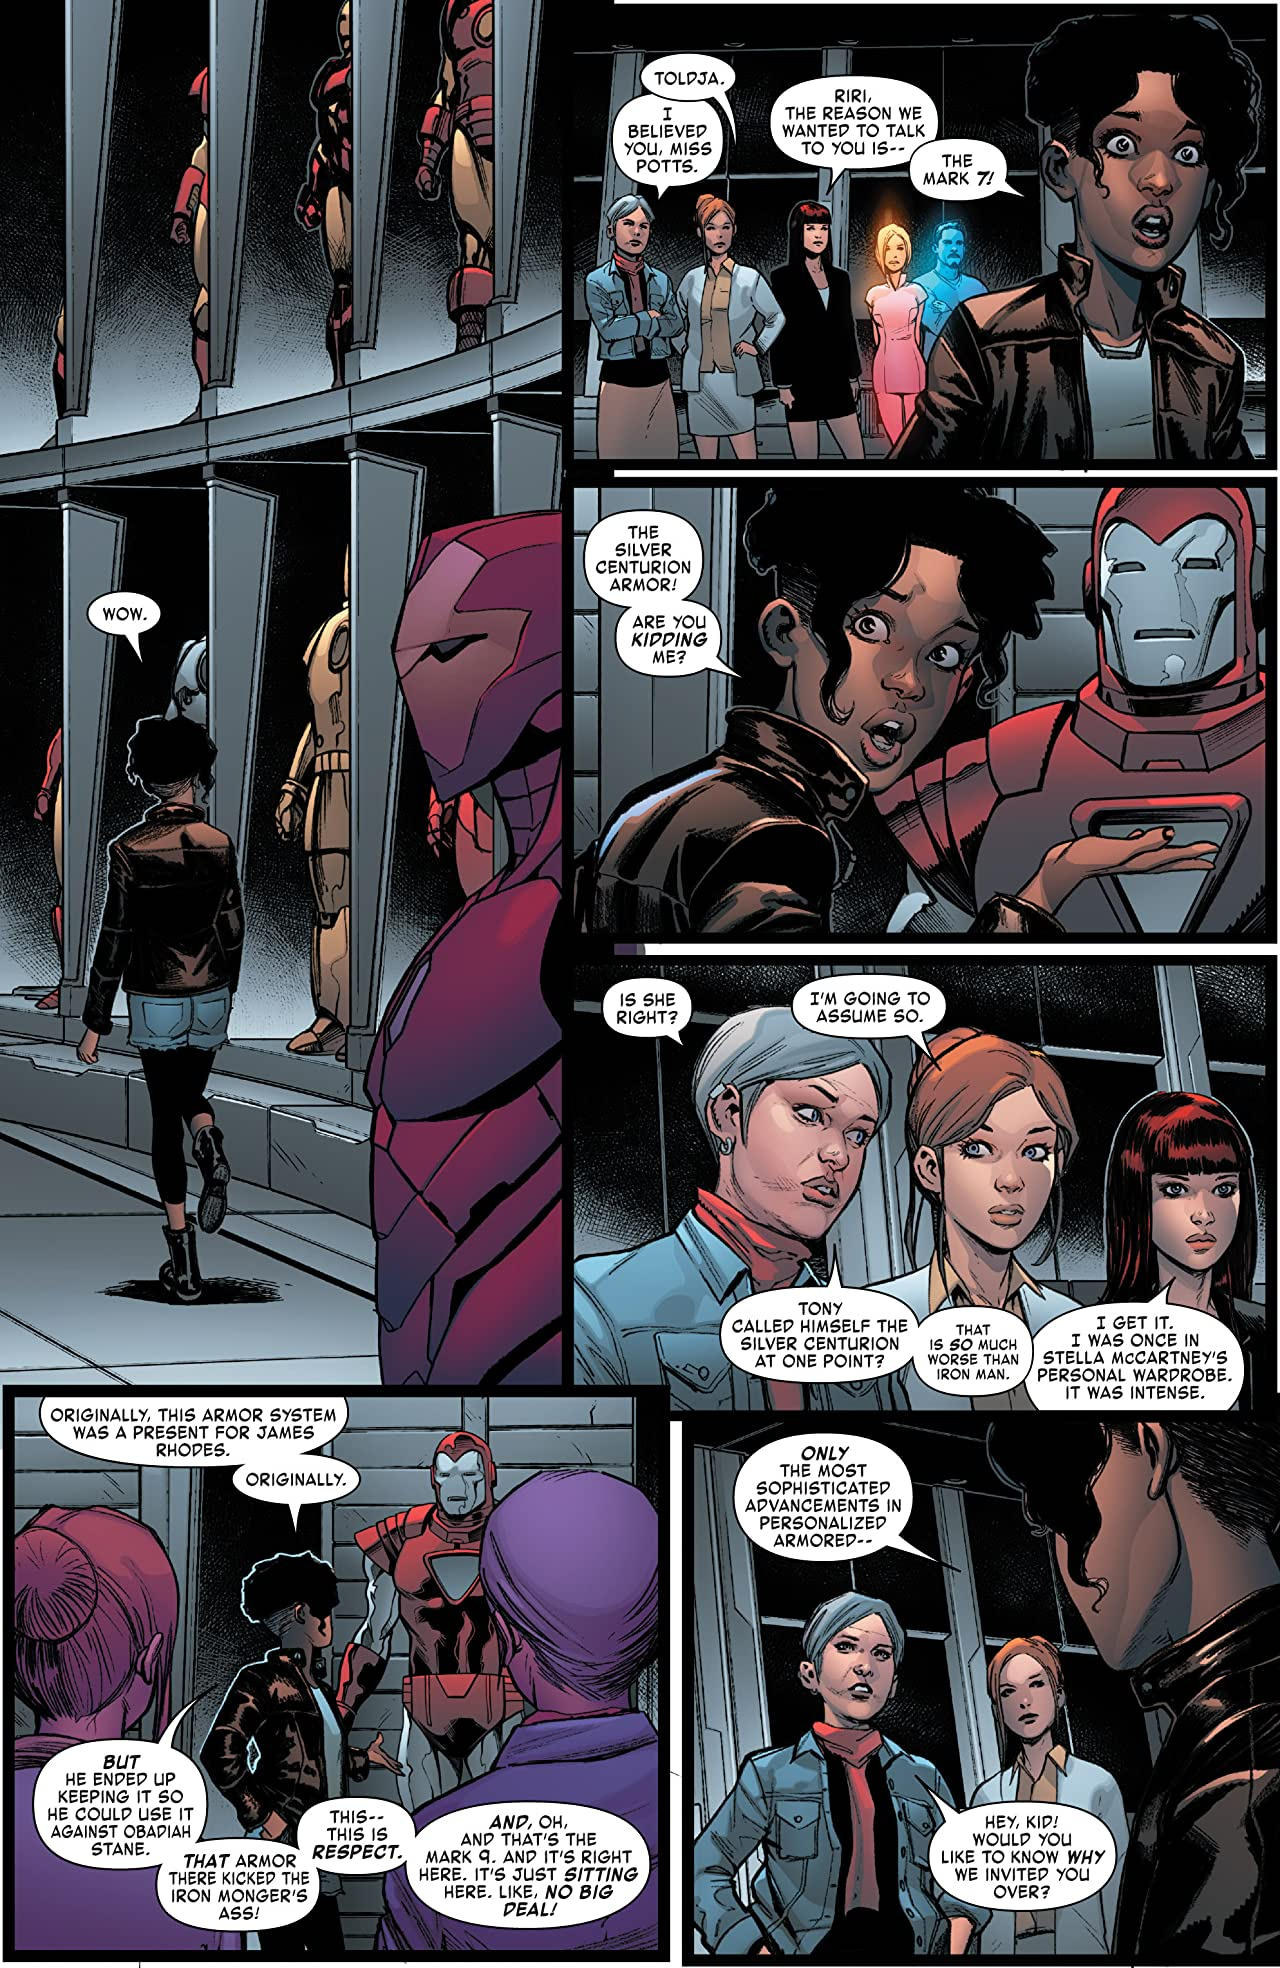 Invincible Iron Man: Ironheart Vol. 2: Choices